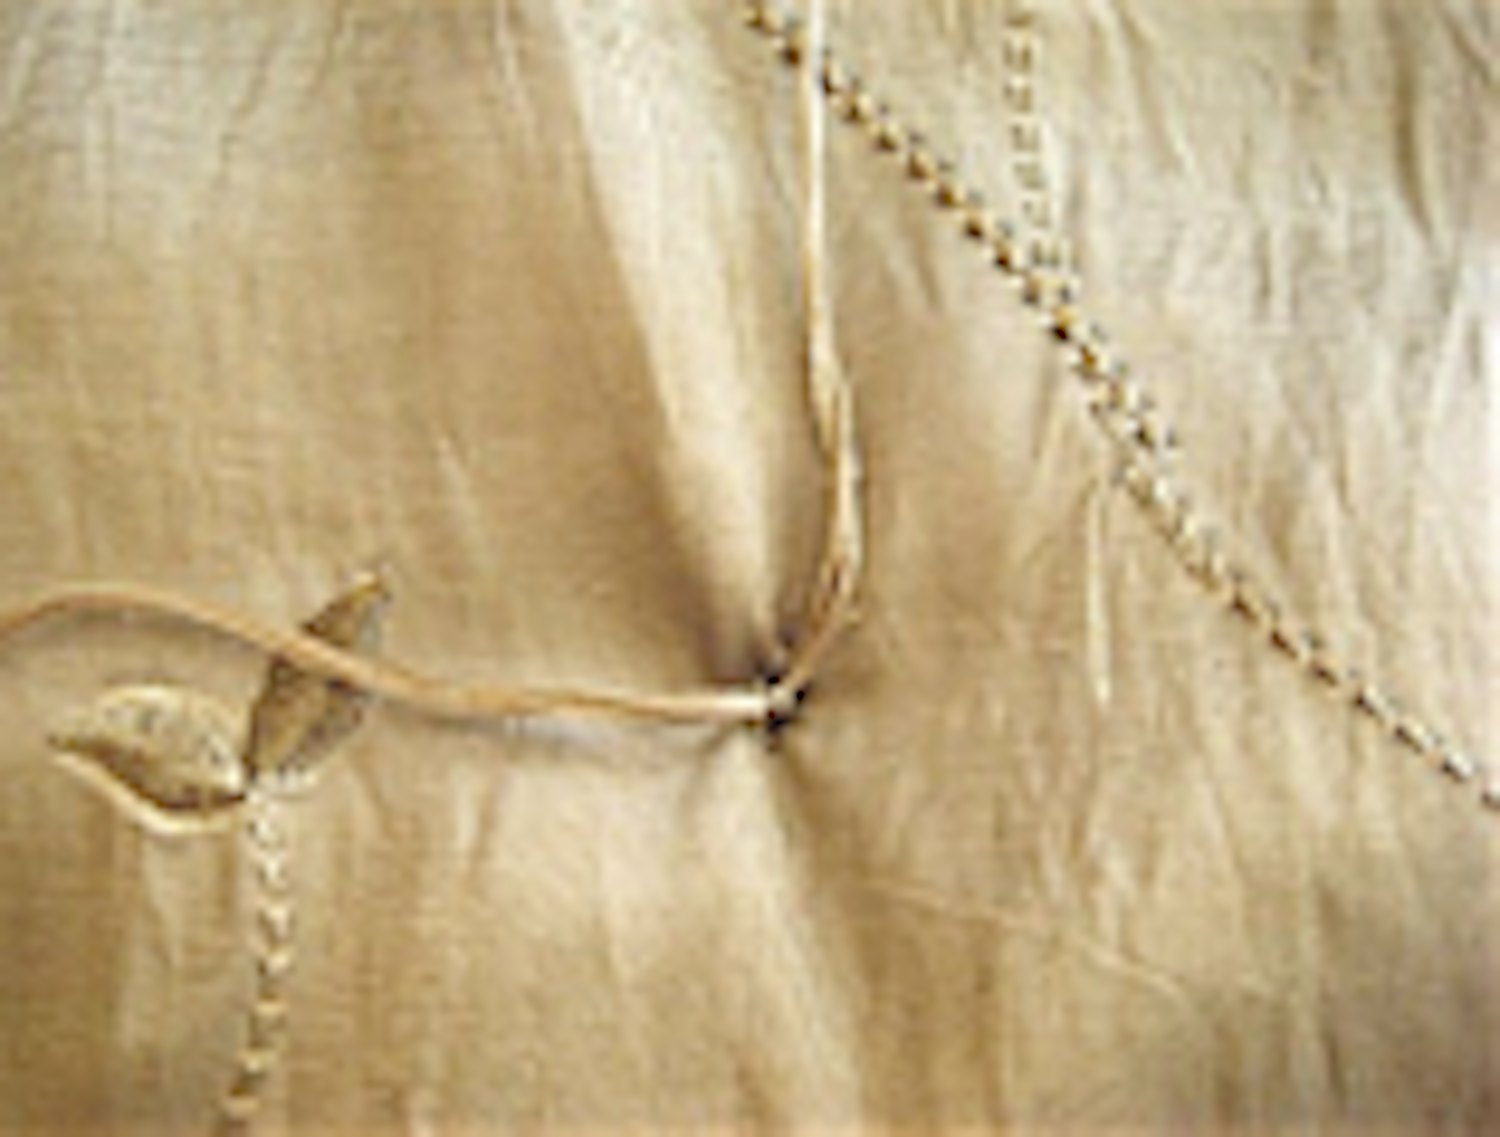 step 12 - Tie a triple knot in the two pieces of floss on the underside. Cut off excess floss close to the knot. Tuft at every marker of the comforter working from the center out, until all tufts are completed.